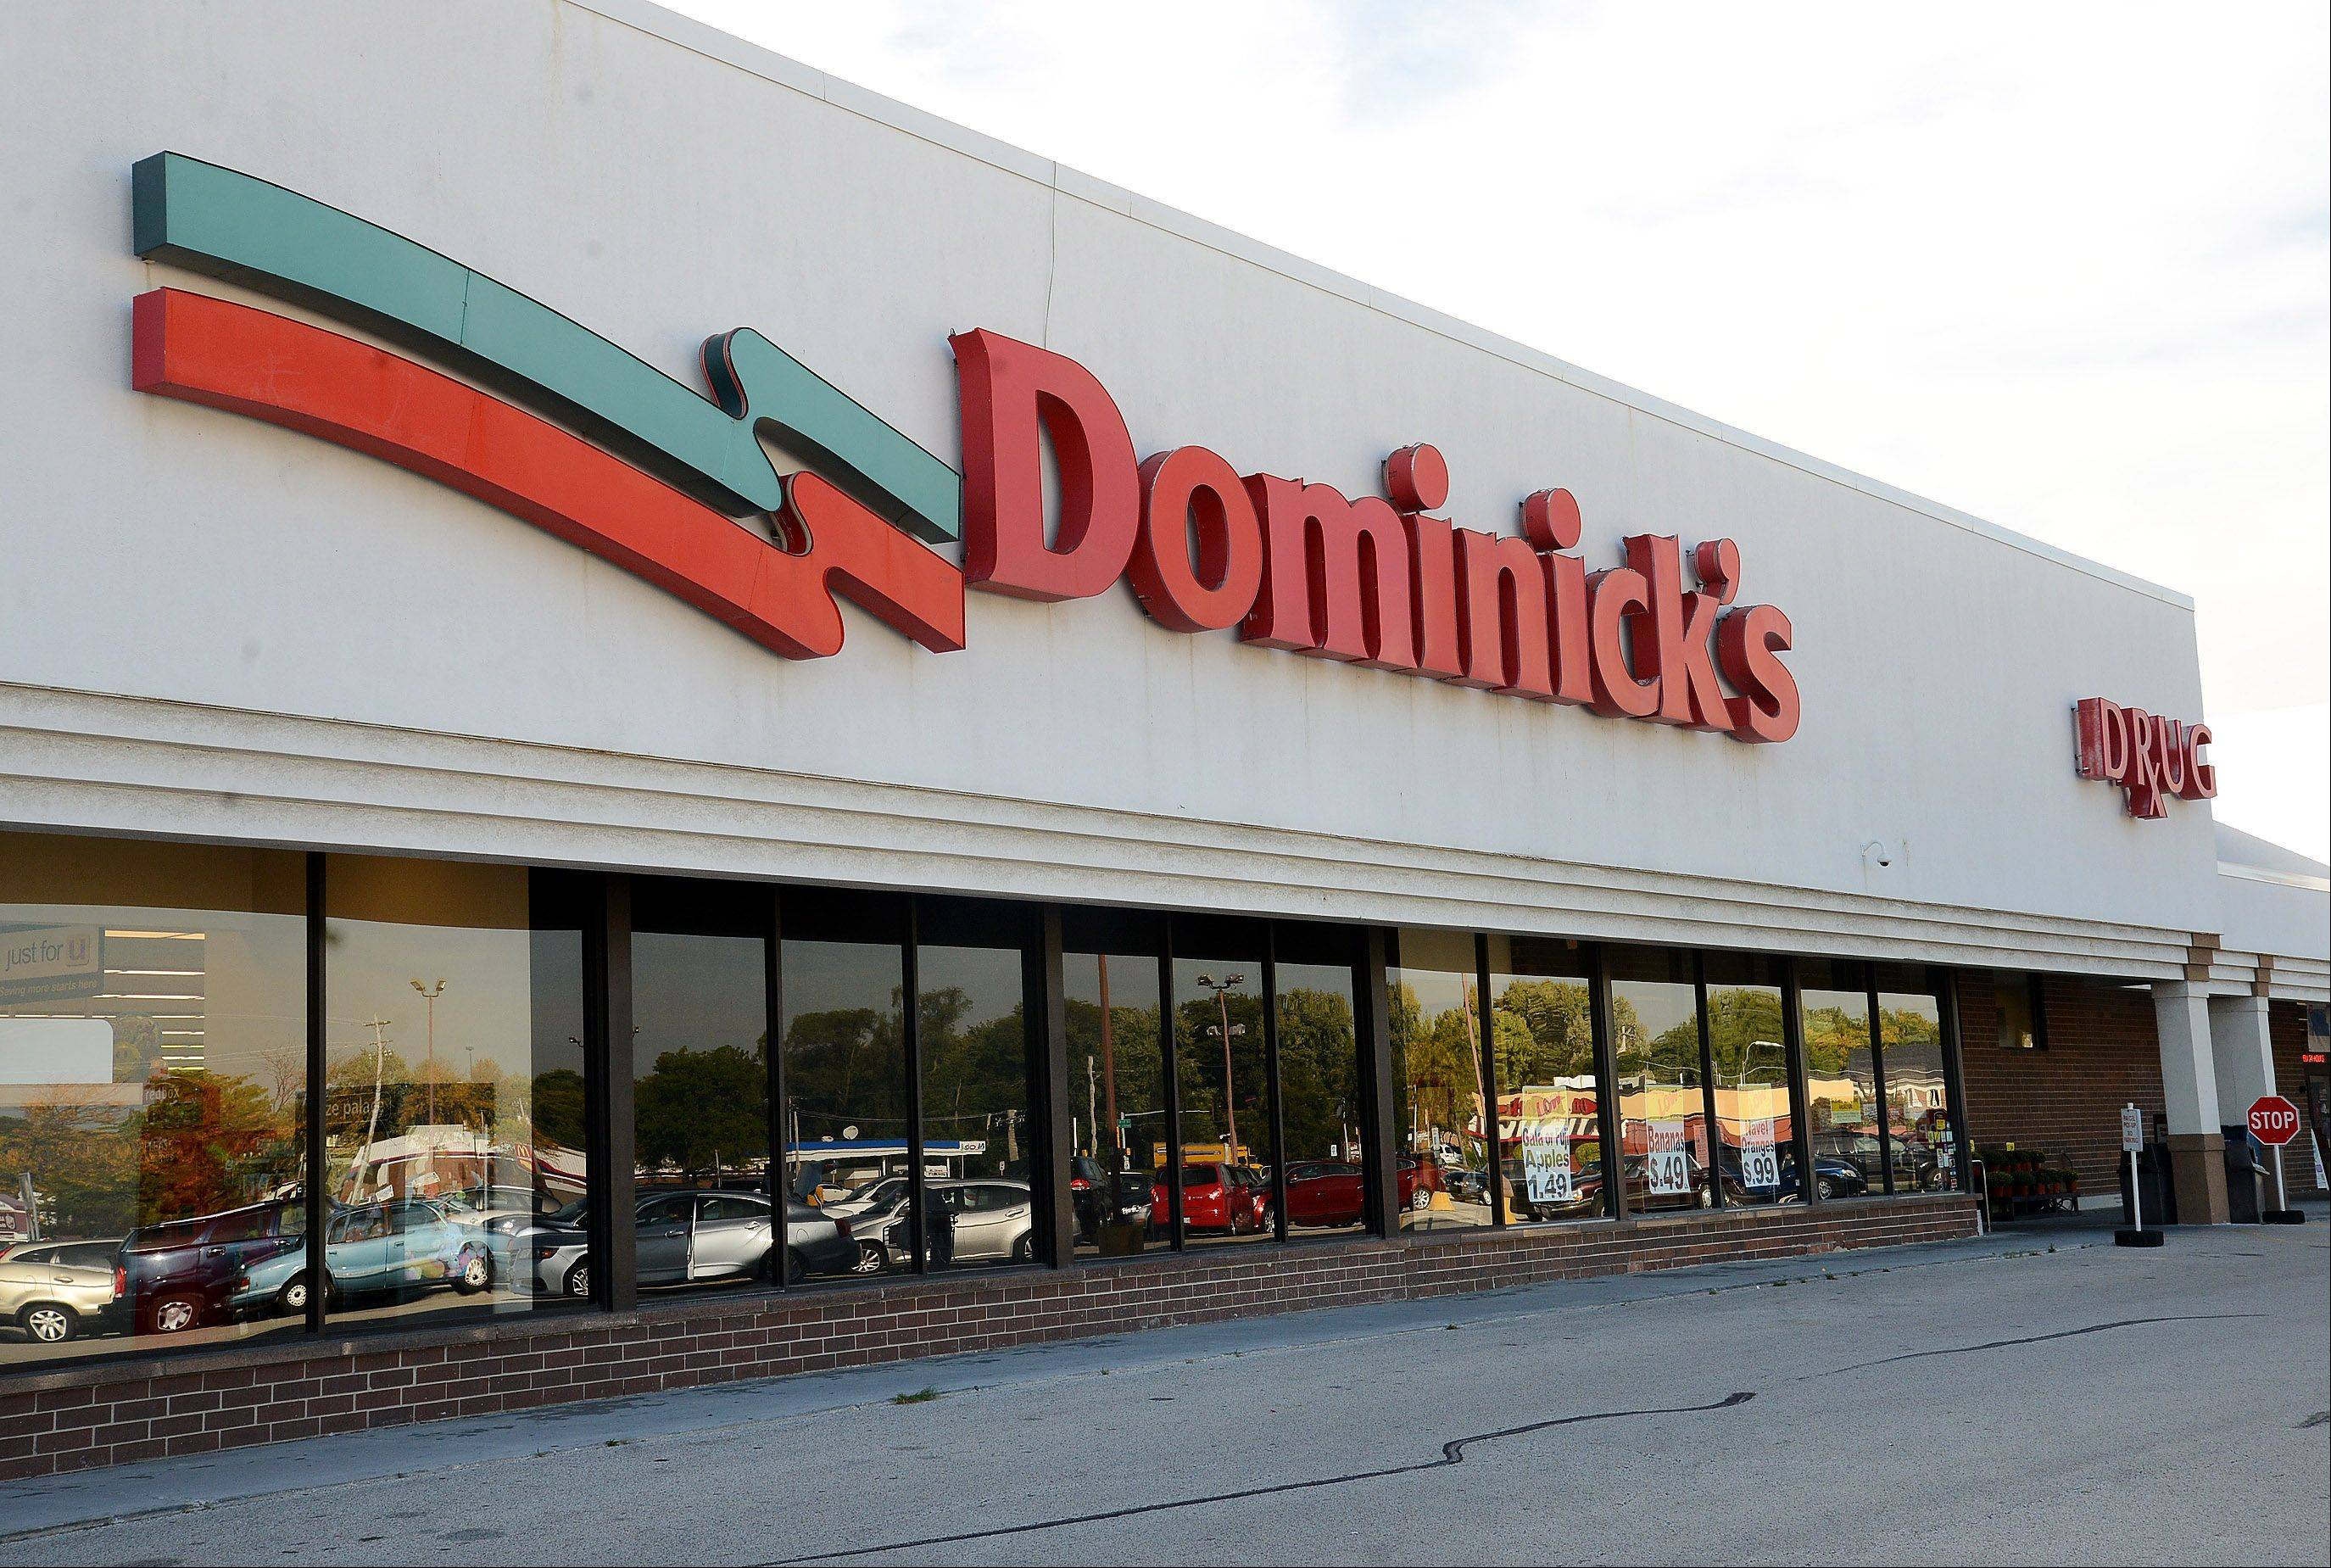 The Dominicks store at Golf and Elmhurst Roads in Mount Prospect. Dominicks has announced it is closing all of its stores by early 2014.